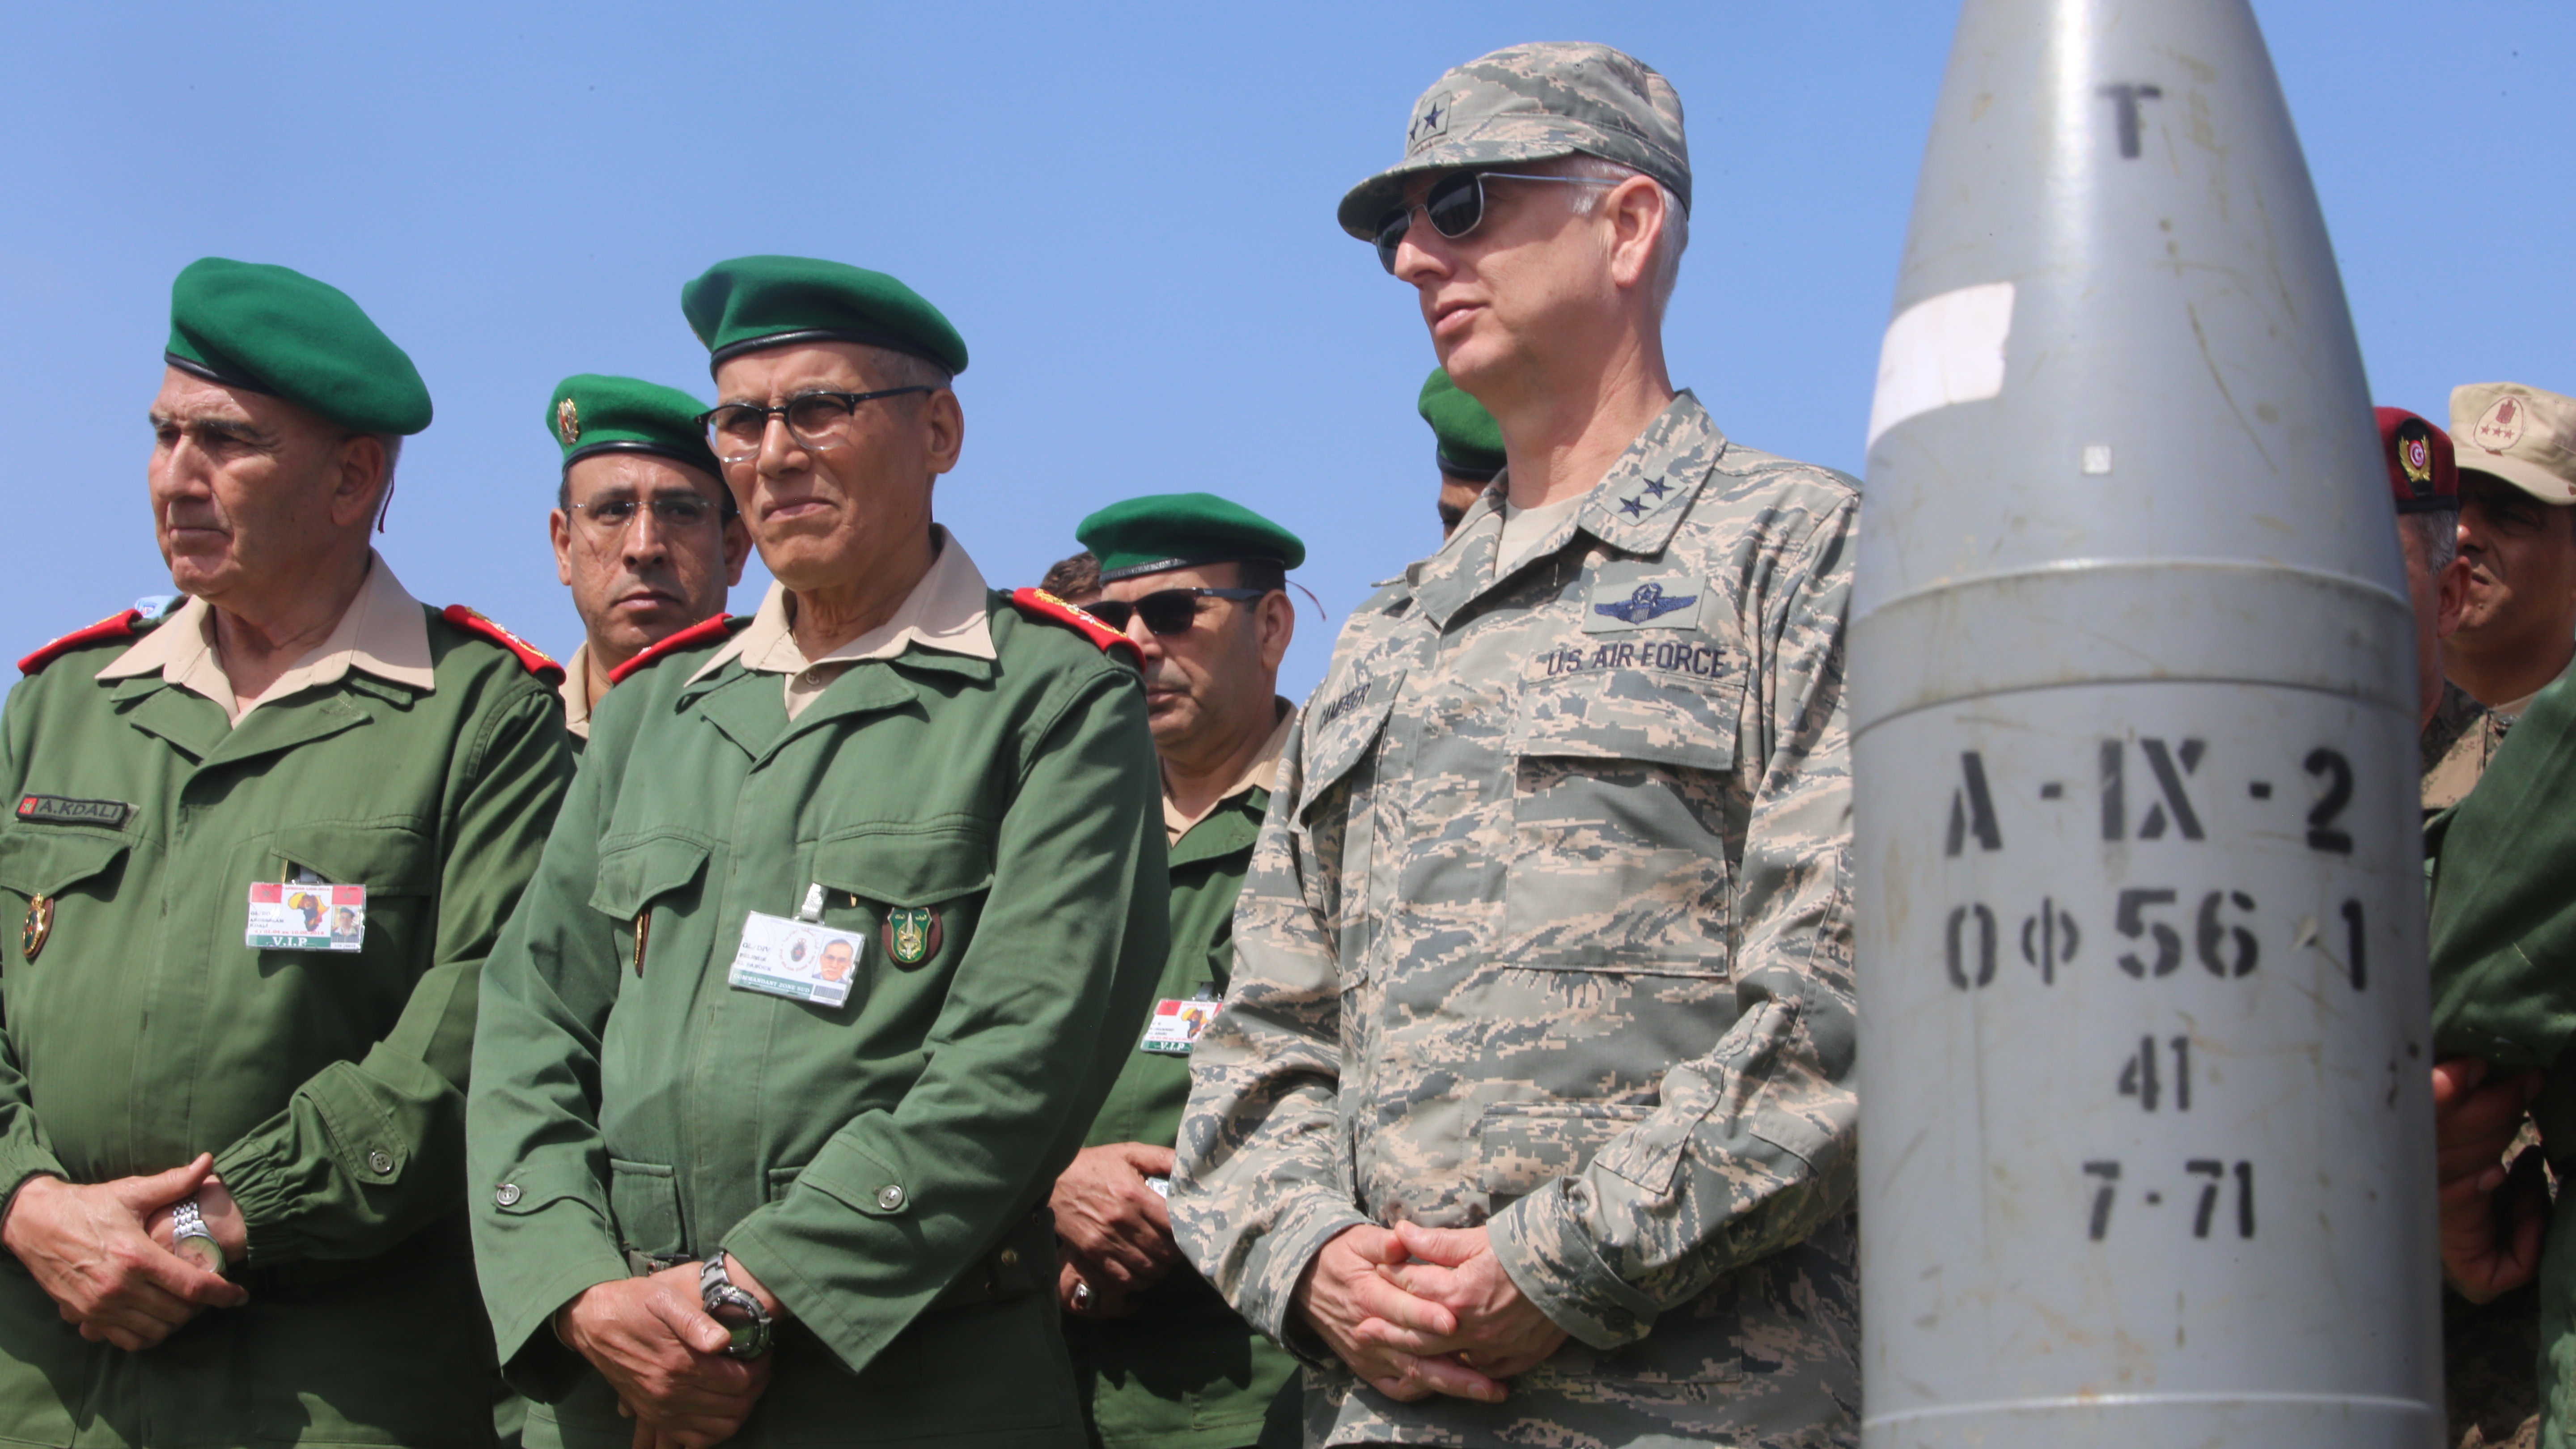 Air Force Maj.Gen. Mark Camerer, director of logistics for U.S. Africa Command, and other distinguished guests of Exercise African Lion 2018 gather during a distinguished visitor tour in Tifnit, Morocco, April 26, 2018. Marines and members of the Moroccan Royal Armed Forces demonstrated tactics, techniques, and procedures from the past two weeks of field training exercises to the distinguished visitors. Exercise African Lion 2018 is a continuation of the U.S. and Morocco's long-standing relationship focused on security cooperation. (U.S. Marine Corps photo by Sgt. Averi Coppa/Released)